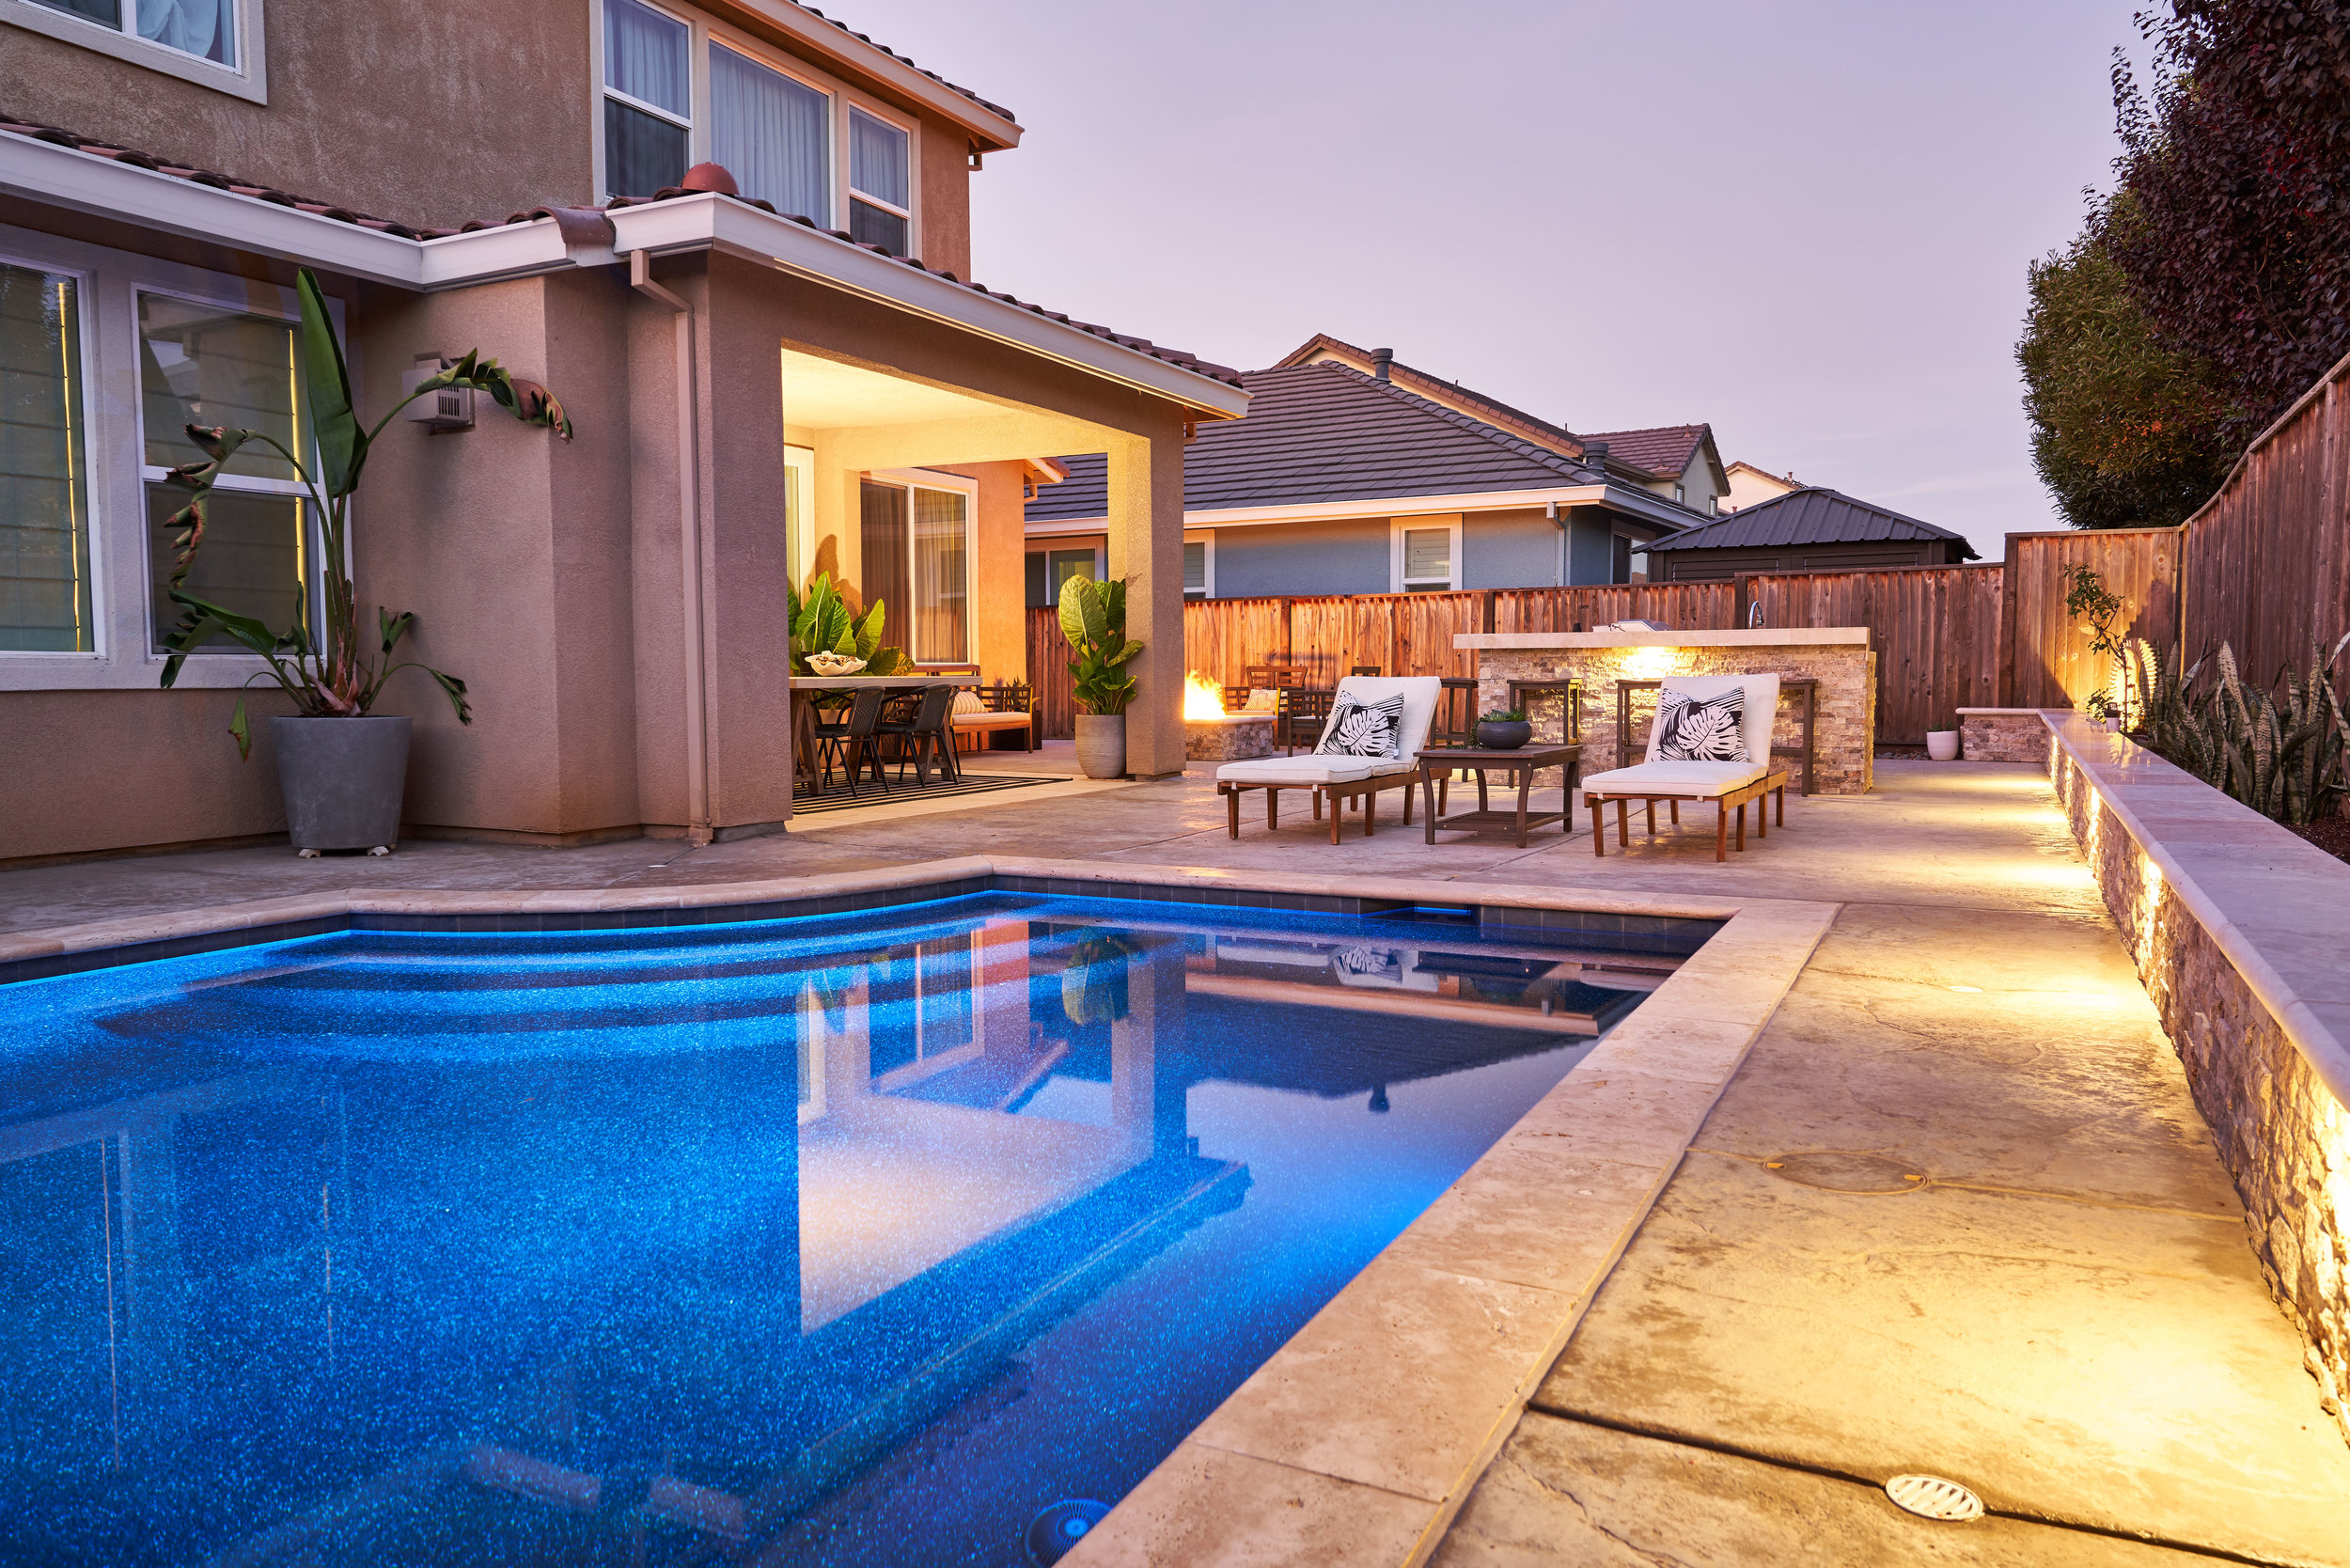 pacheco_landscape_and_pool_DSC9611_illume_multimedia_brentwood_photographer.jpg